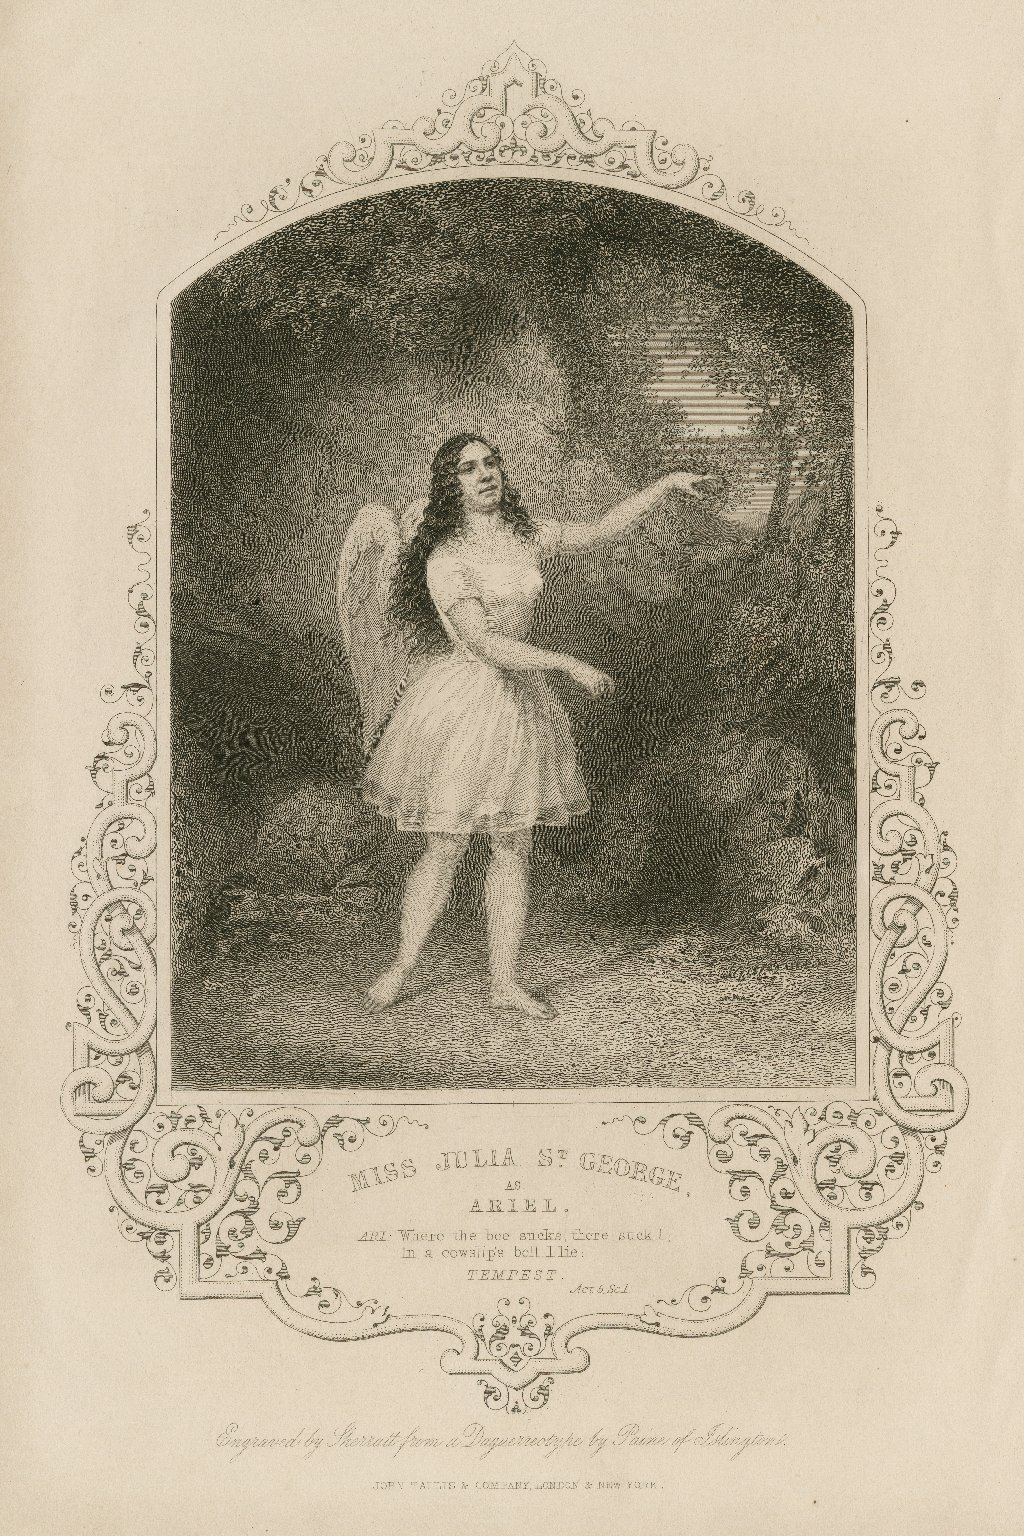 Miss Julia St. George as Ariel, Ari: Where the bee sucks, there suck I ... Tempest, act 5, sc. 1 [graphic] / engraved by Sherratt ; from a daguerreotype by Paine of Islington.